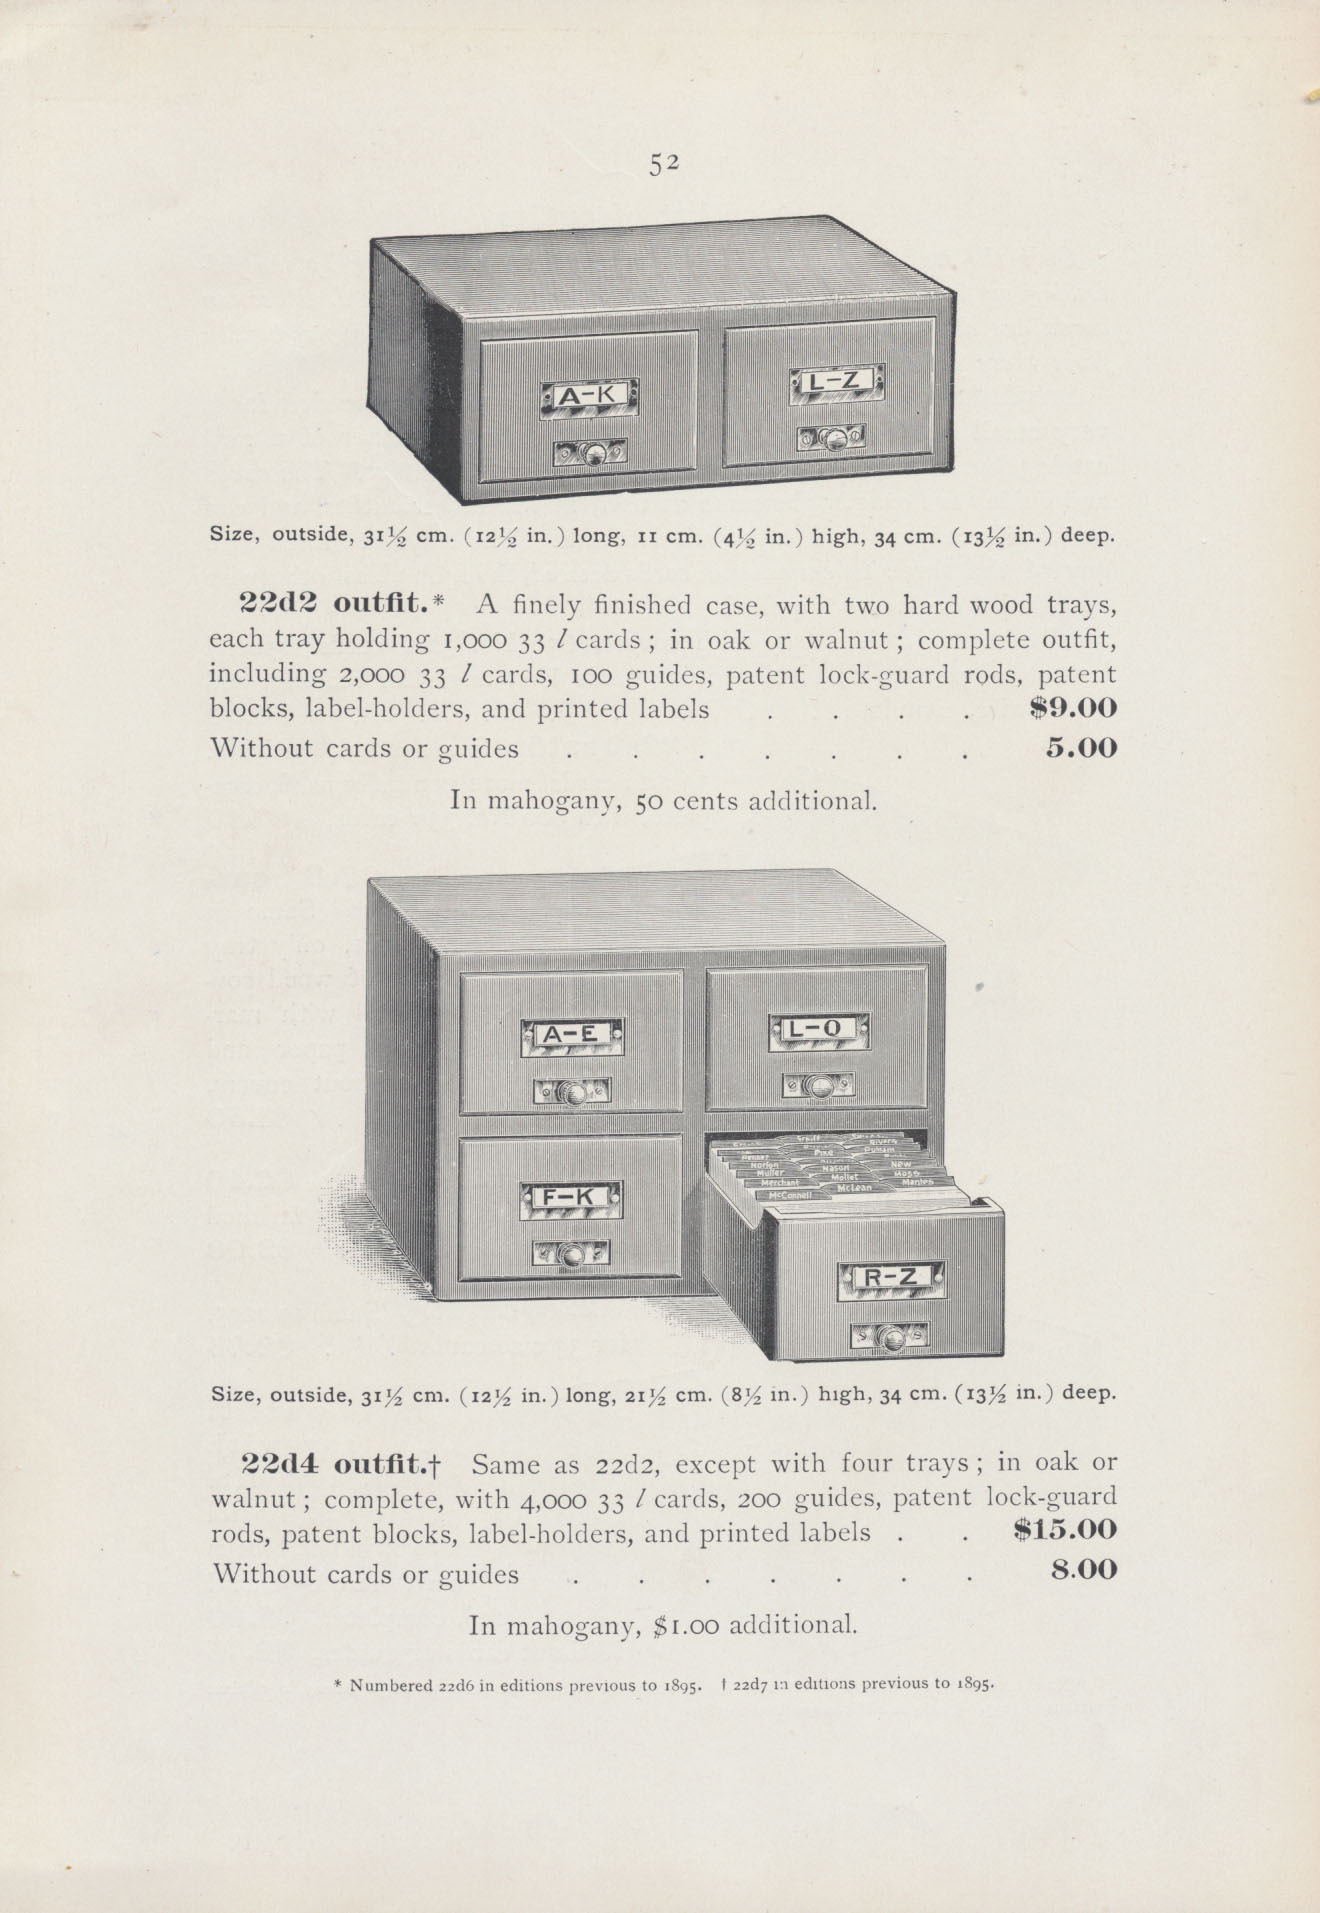 two-tray card catalog and four-tray card catalog with open tray filled with guides and cards